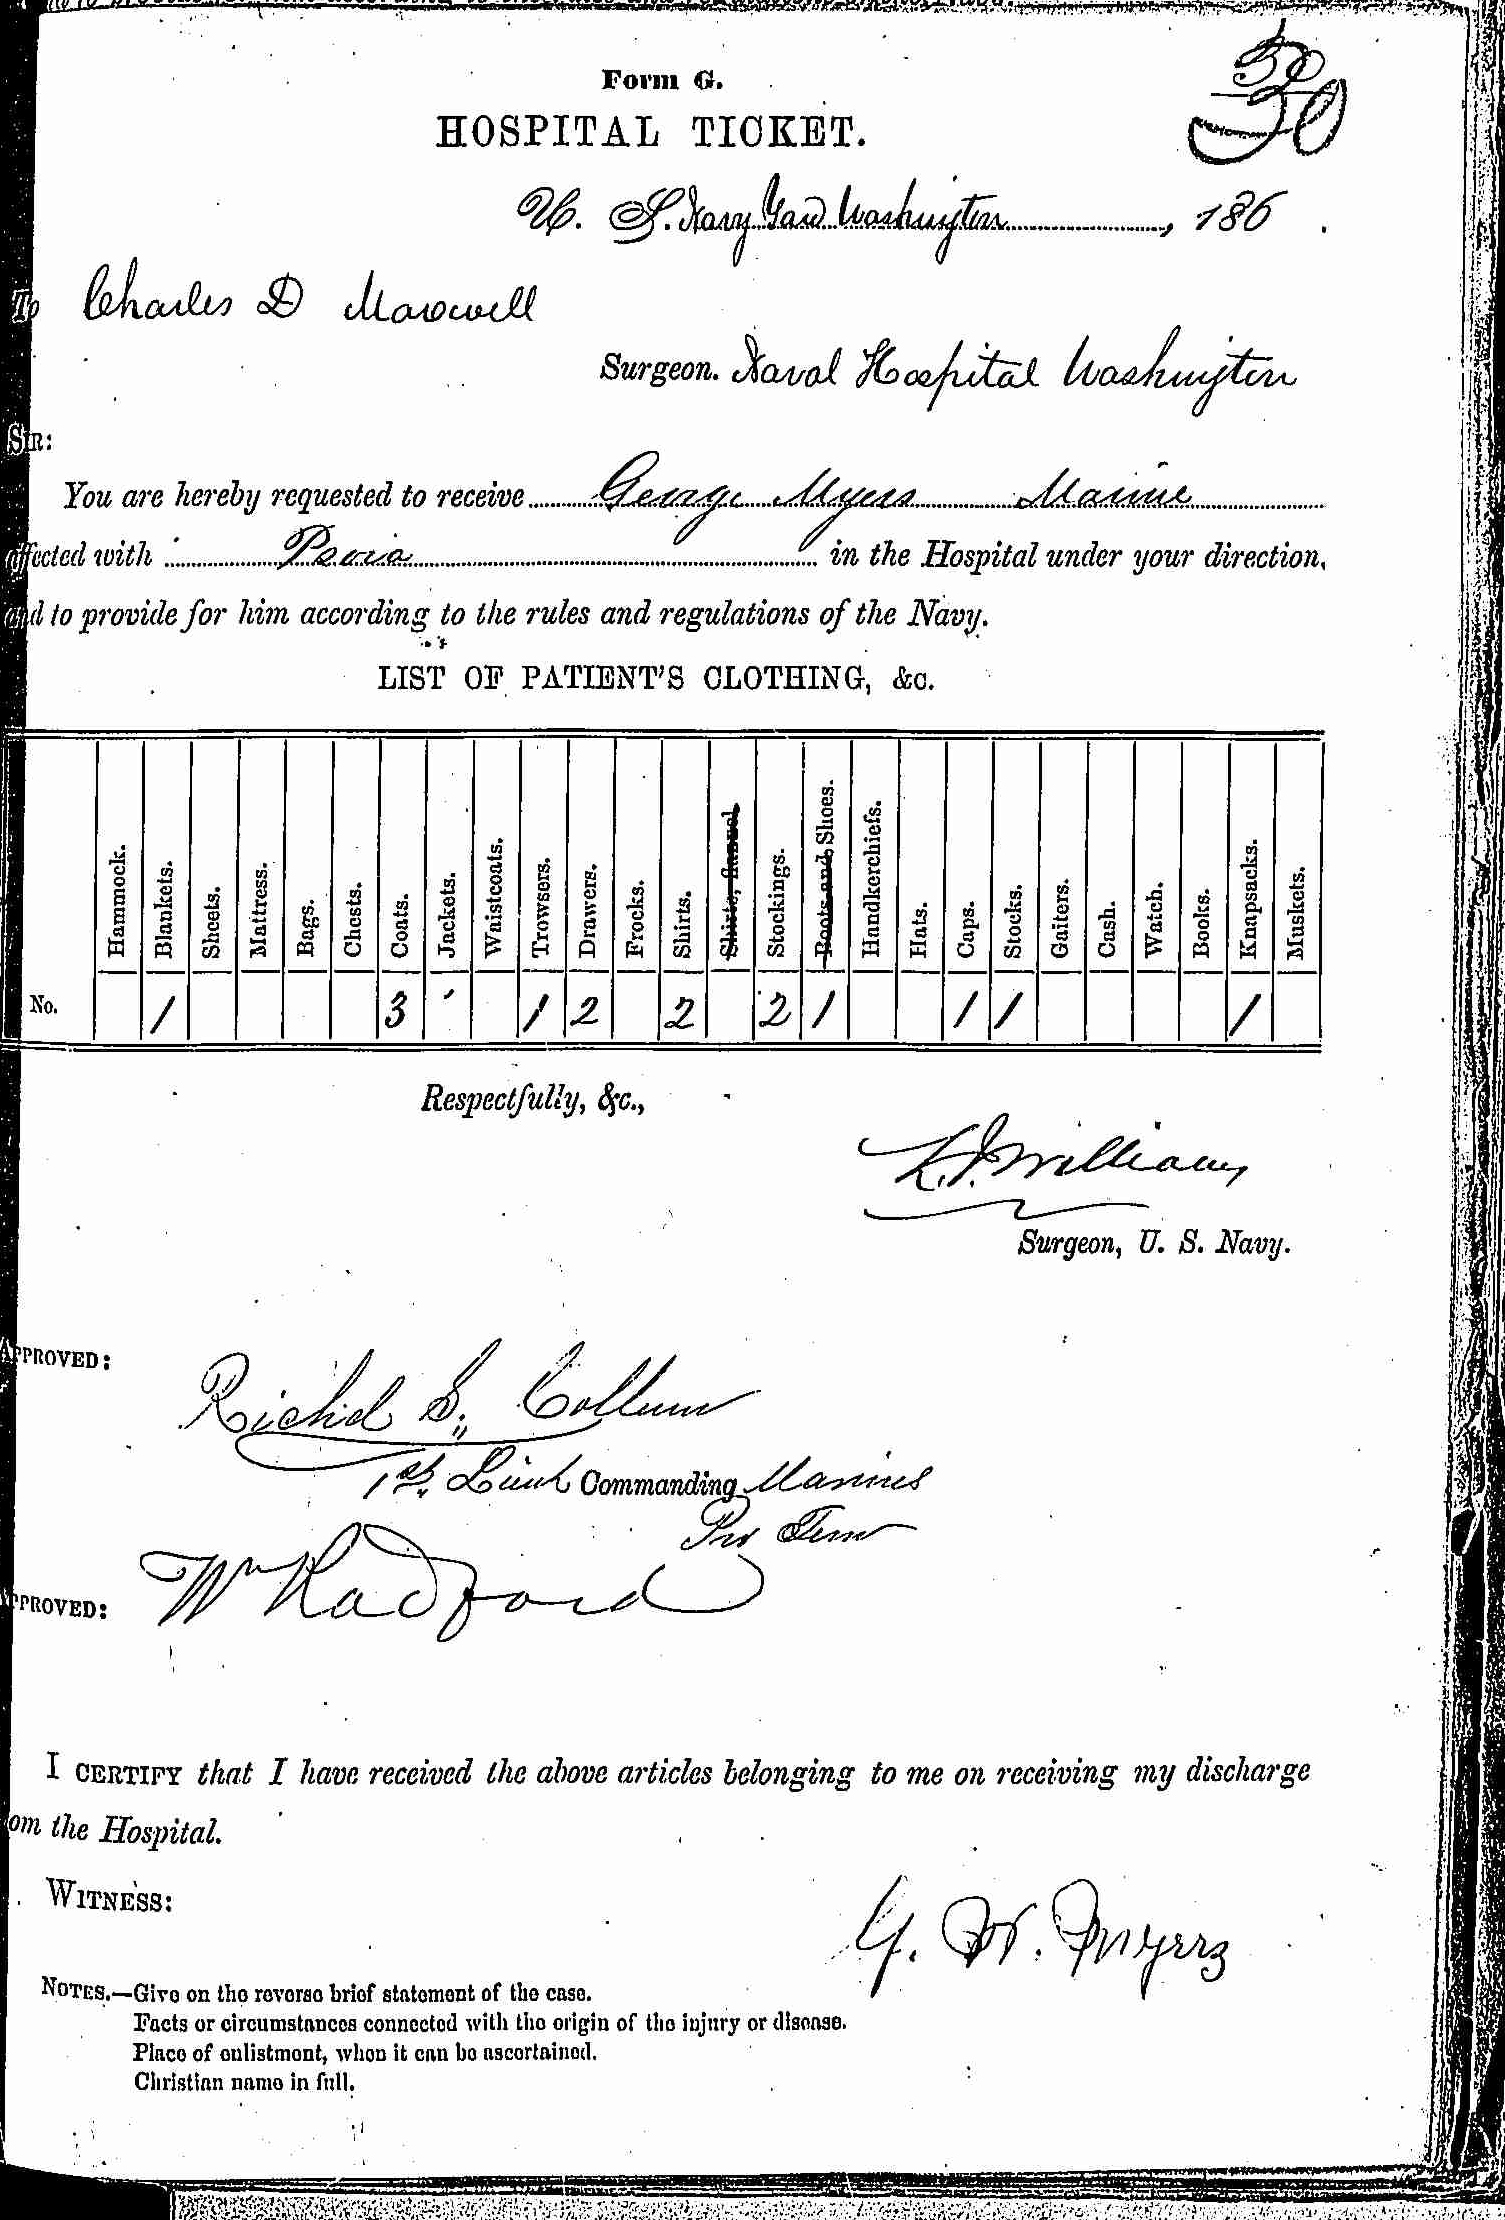 Entry for George Myers (page 1 of 2) in the log Hospital Tickets and Case Papers - Naval Hospital - Washington, D.C. - 1865-68